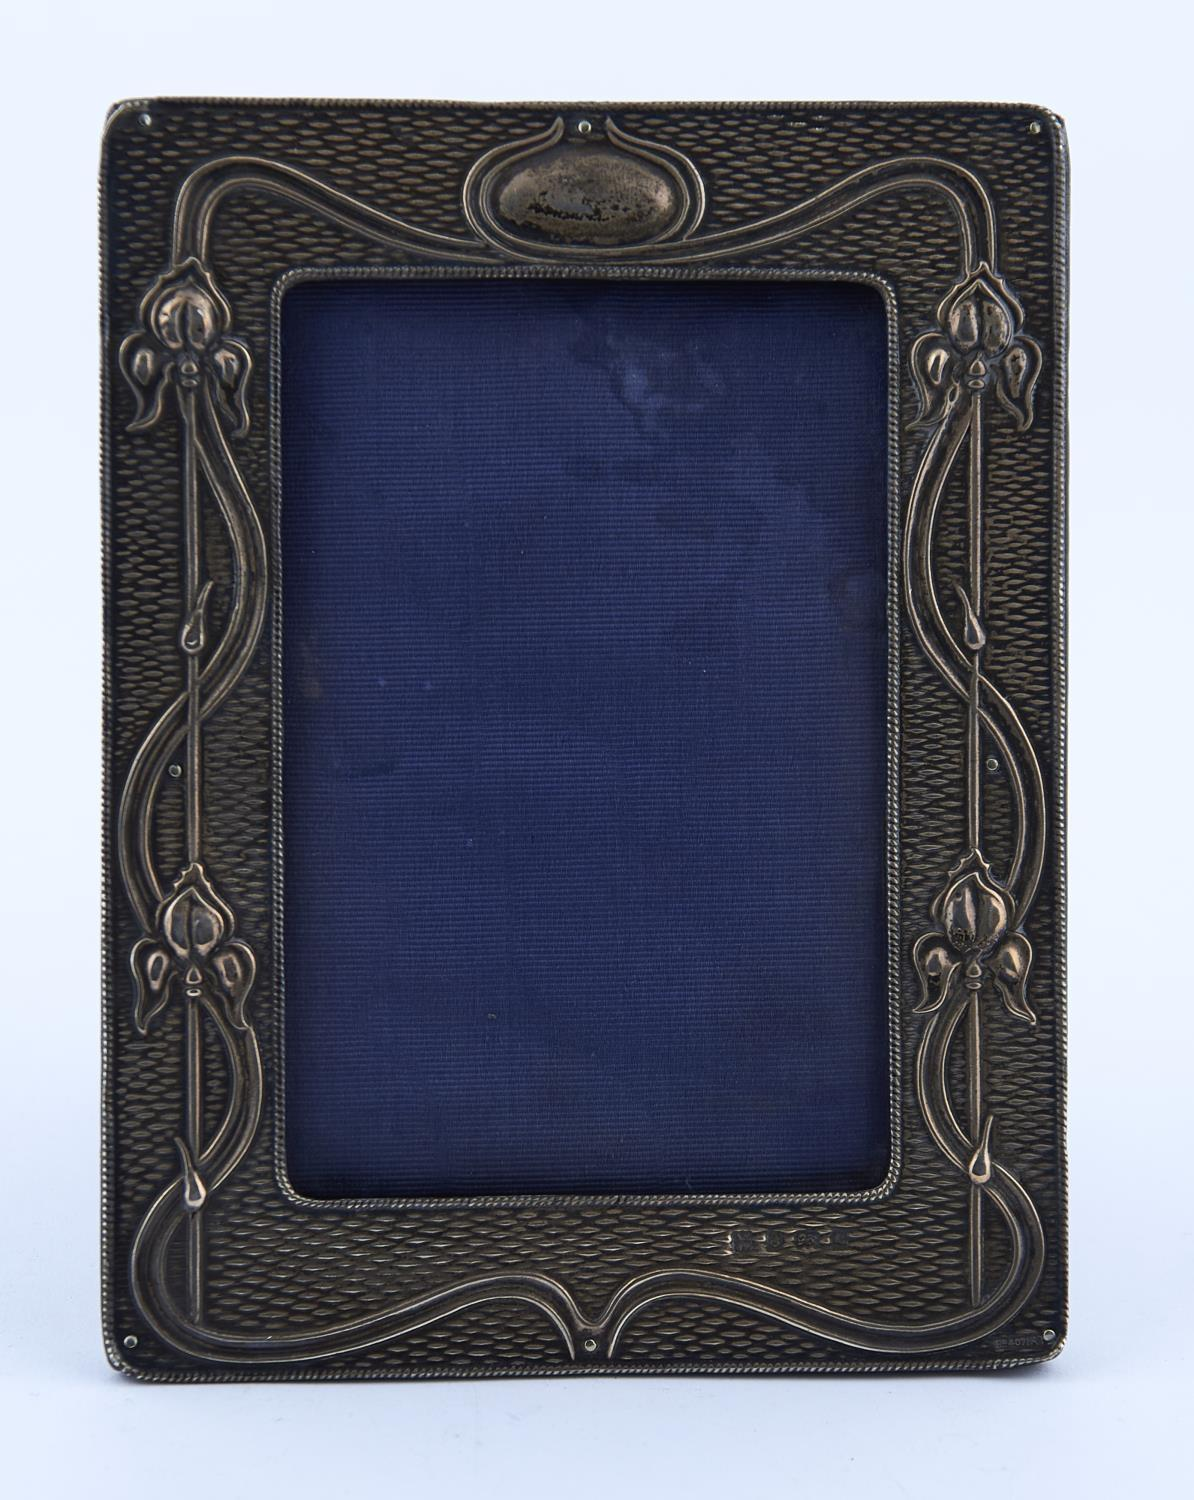 AN ART NOUVEAU SILVER PHOTOGRAPH FRAME, THE MOUNT DIE STAMPED WITH STYLISED LILIES AND ENTRELAC ON A